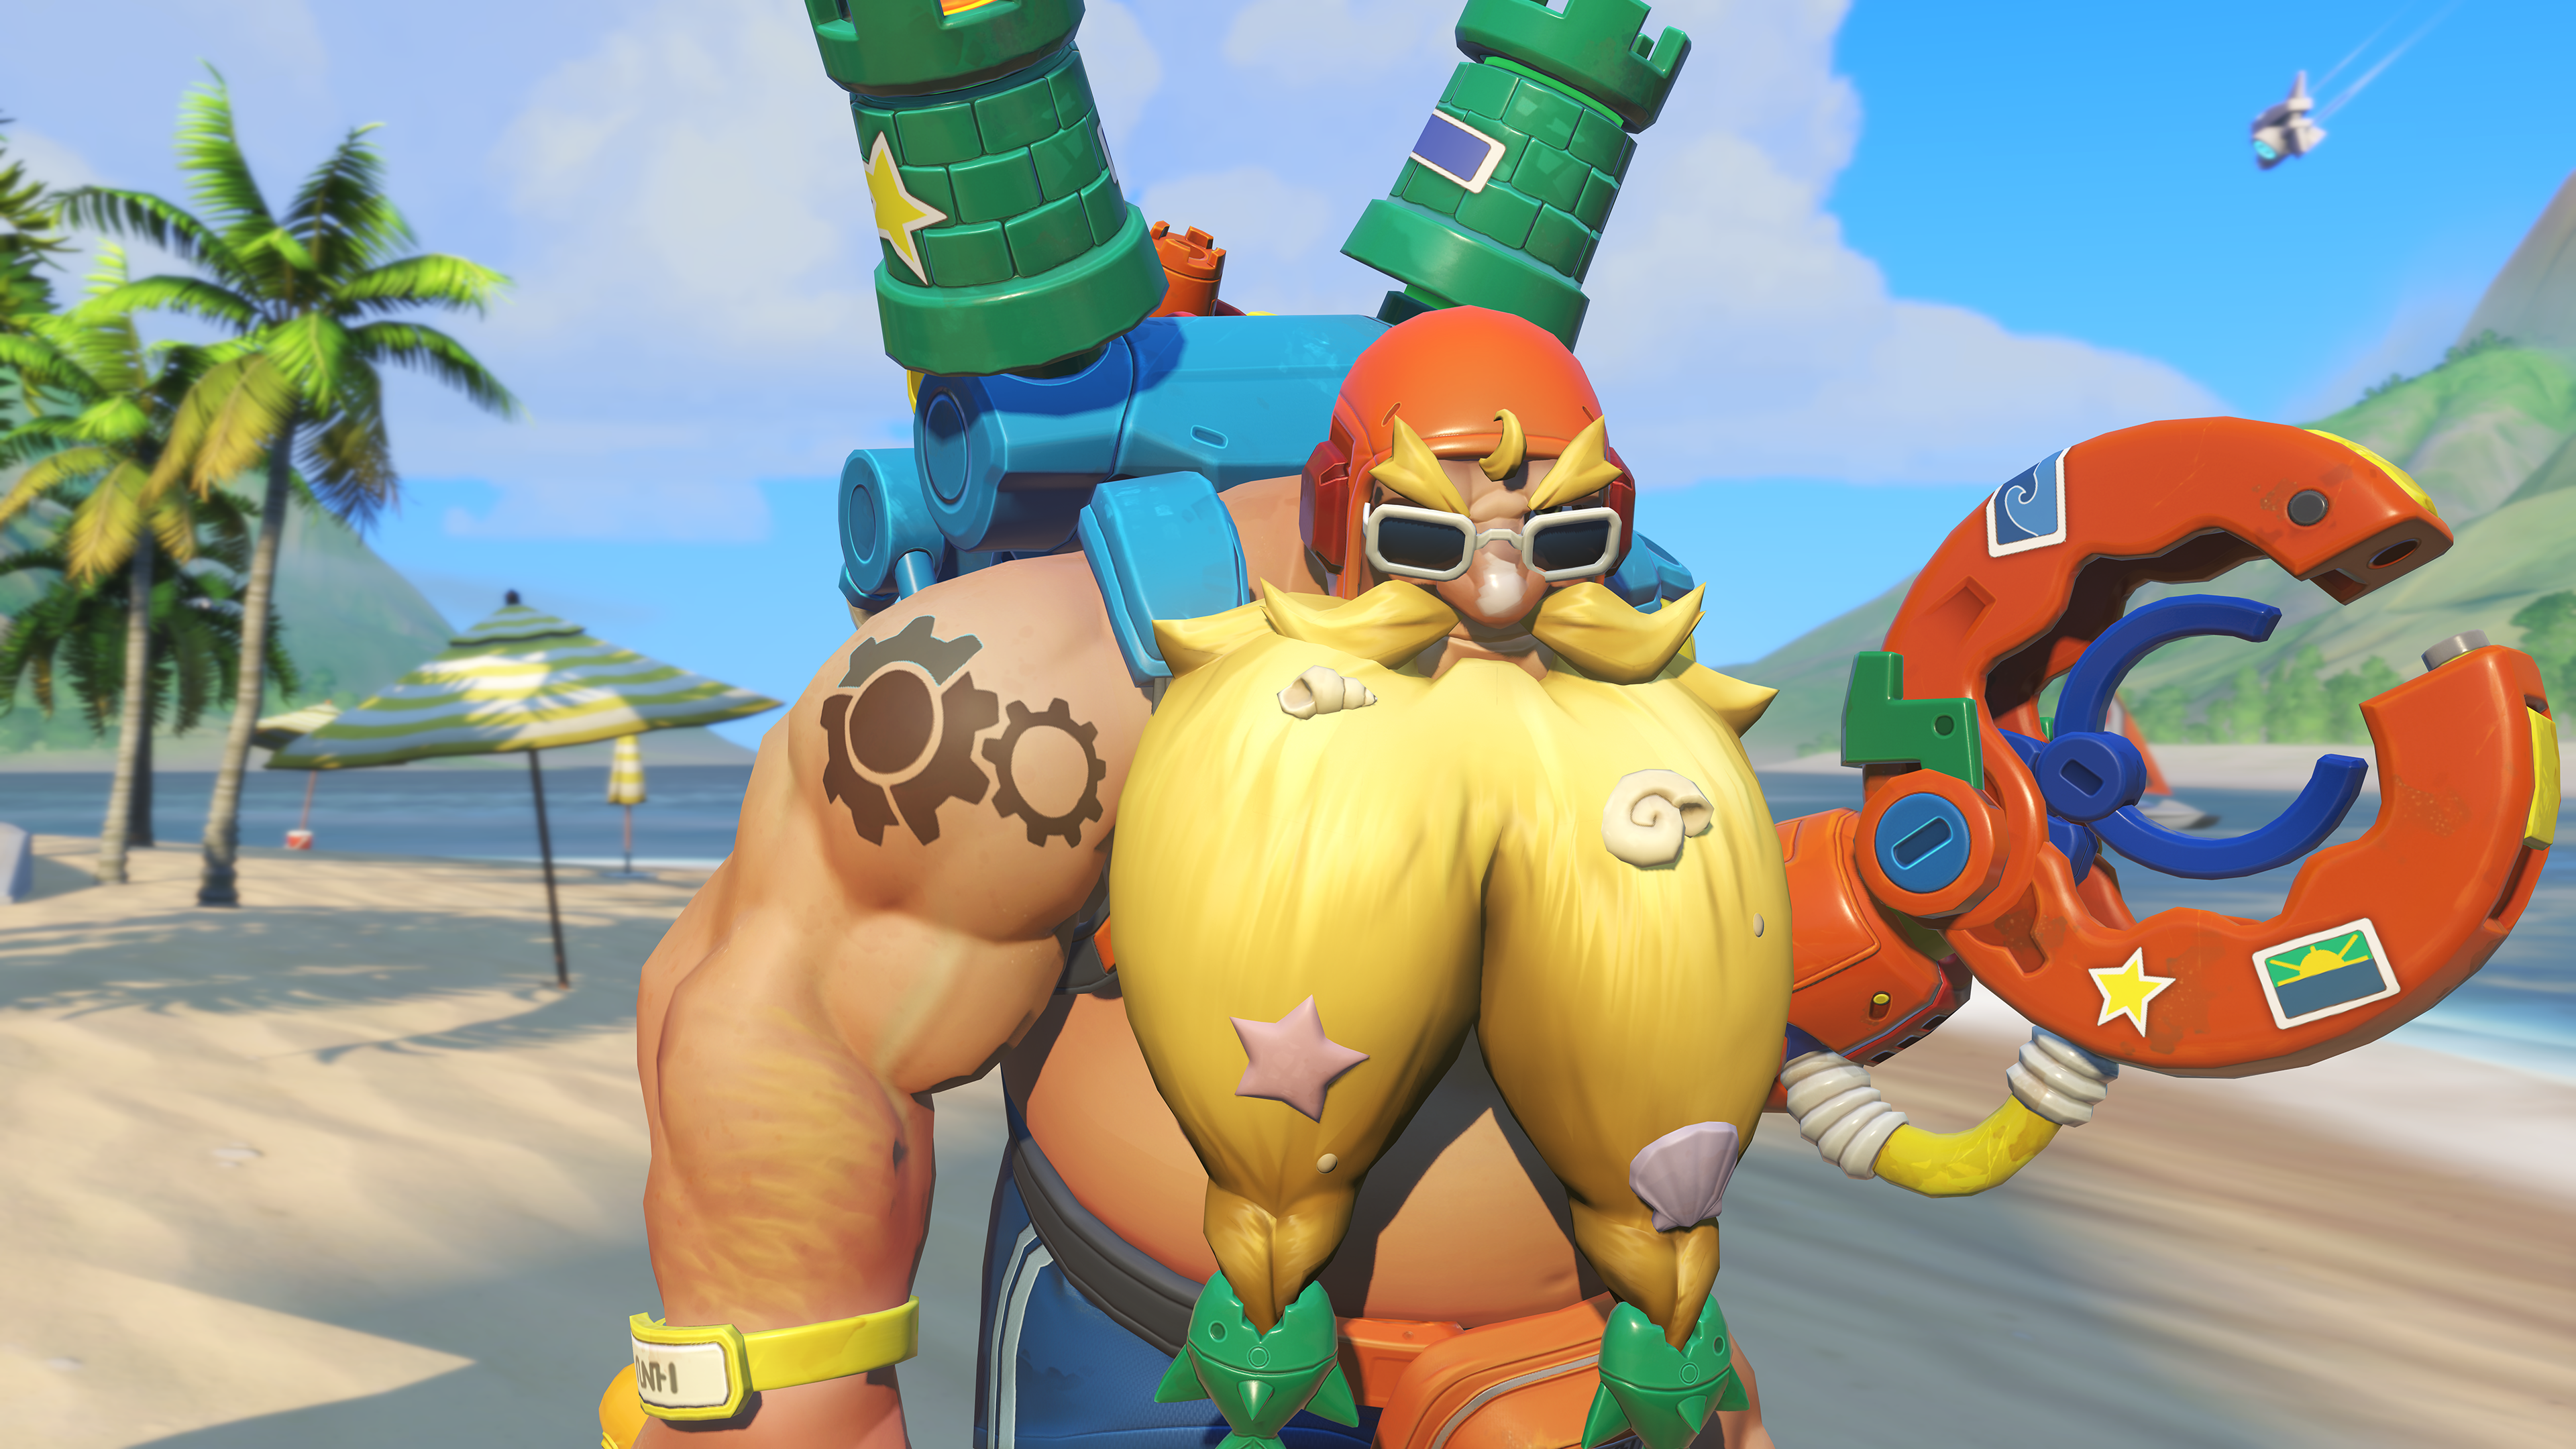 The Summer Games are back in Overwatch — with new skins